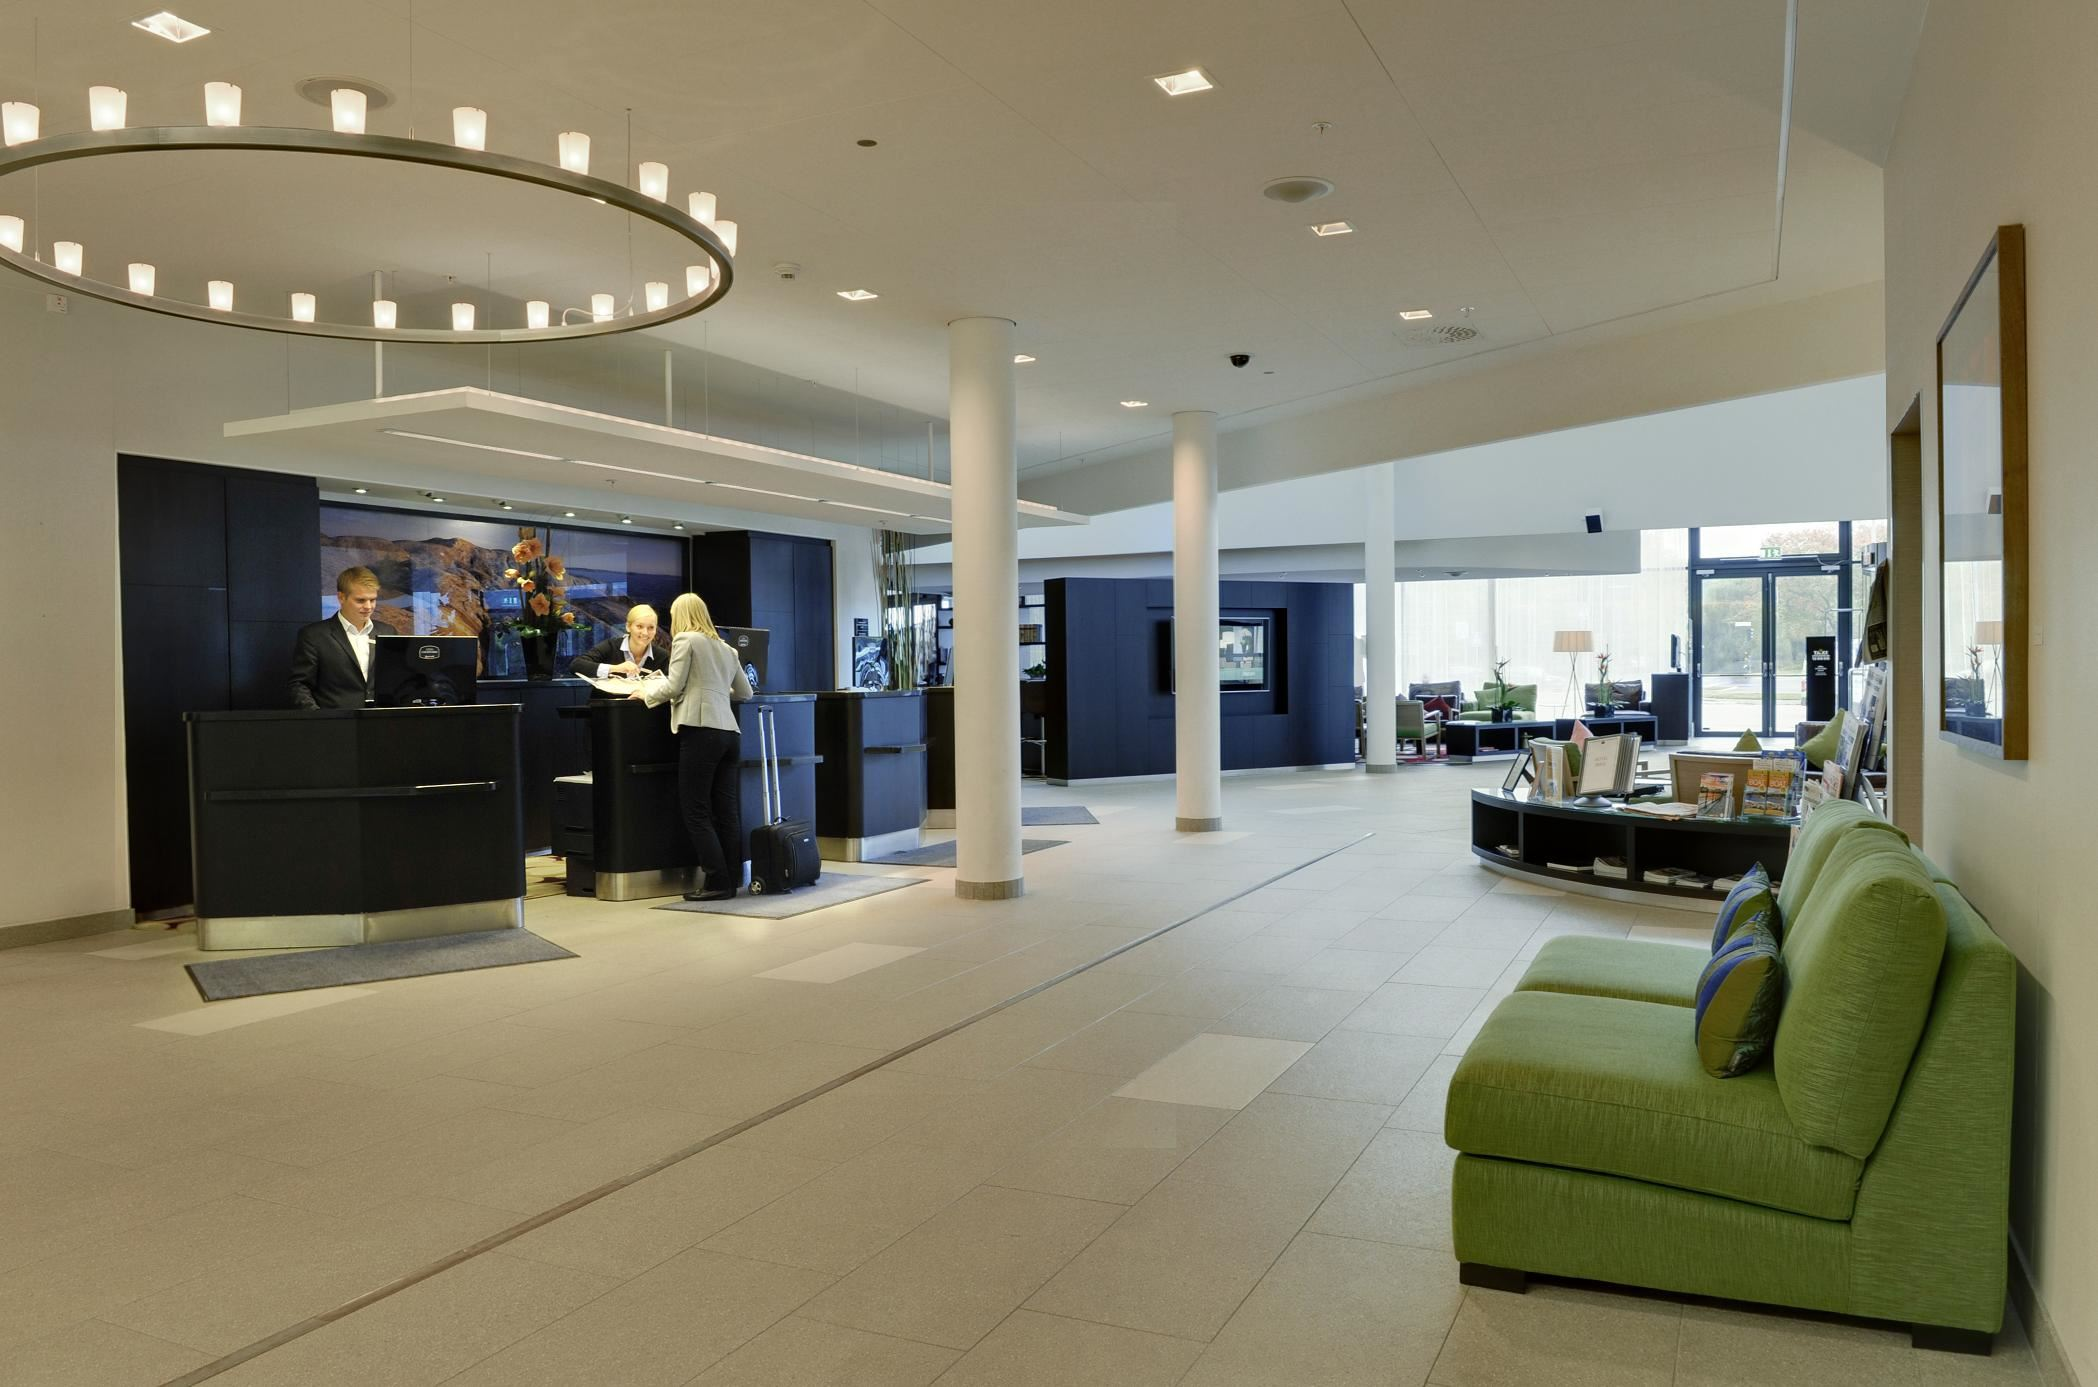 Courtyard by Marriott Stockholm Kungsholmen